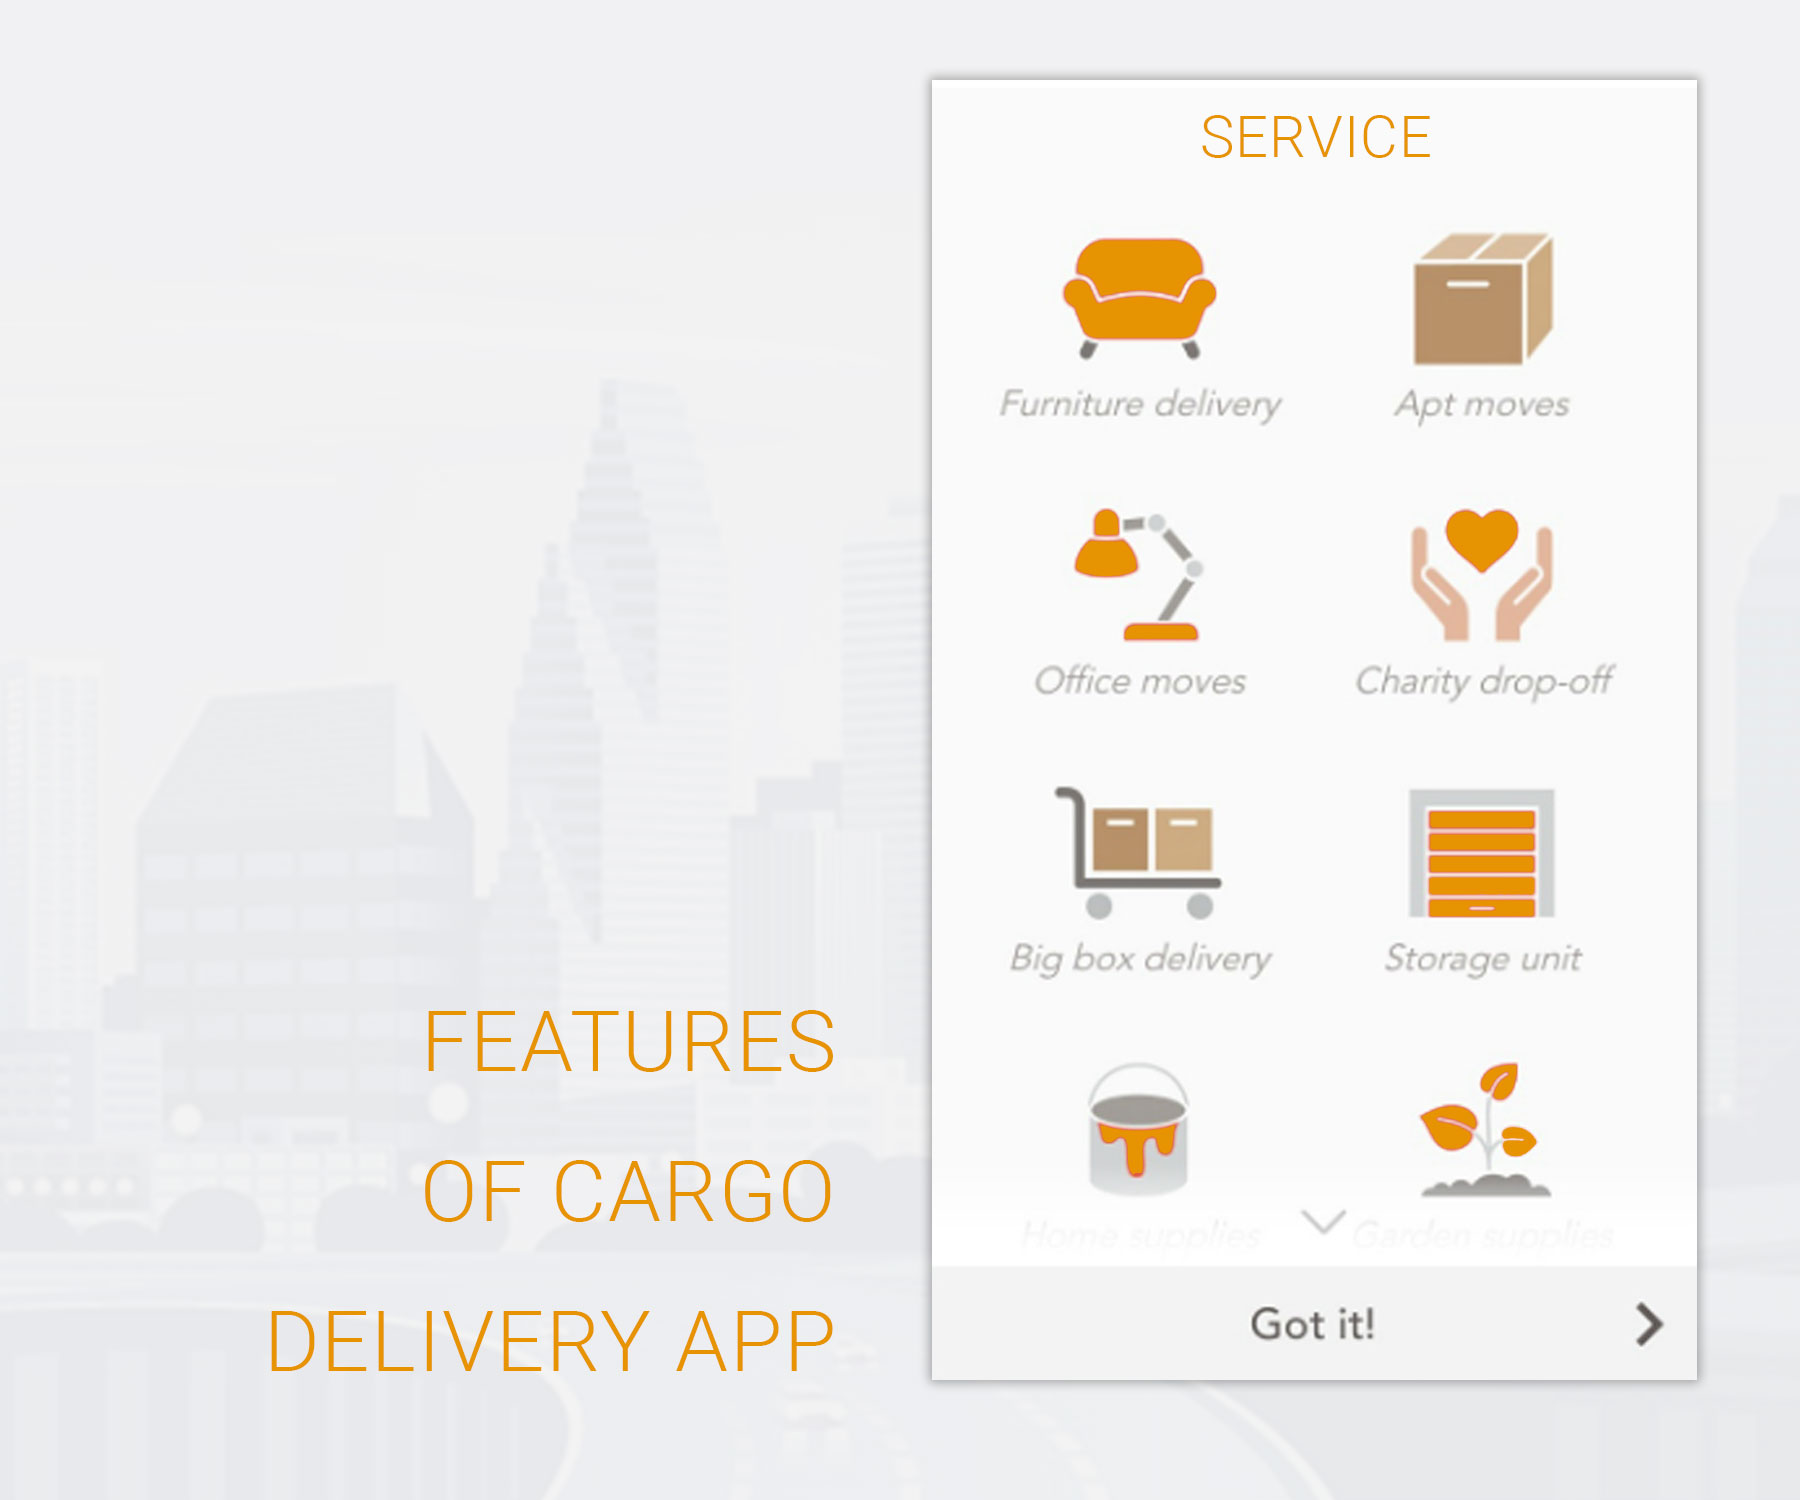 Features-of-one-demand-cargo-delivery-app